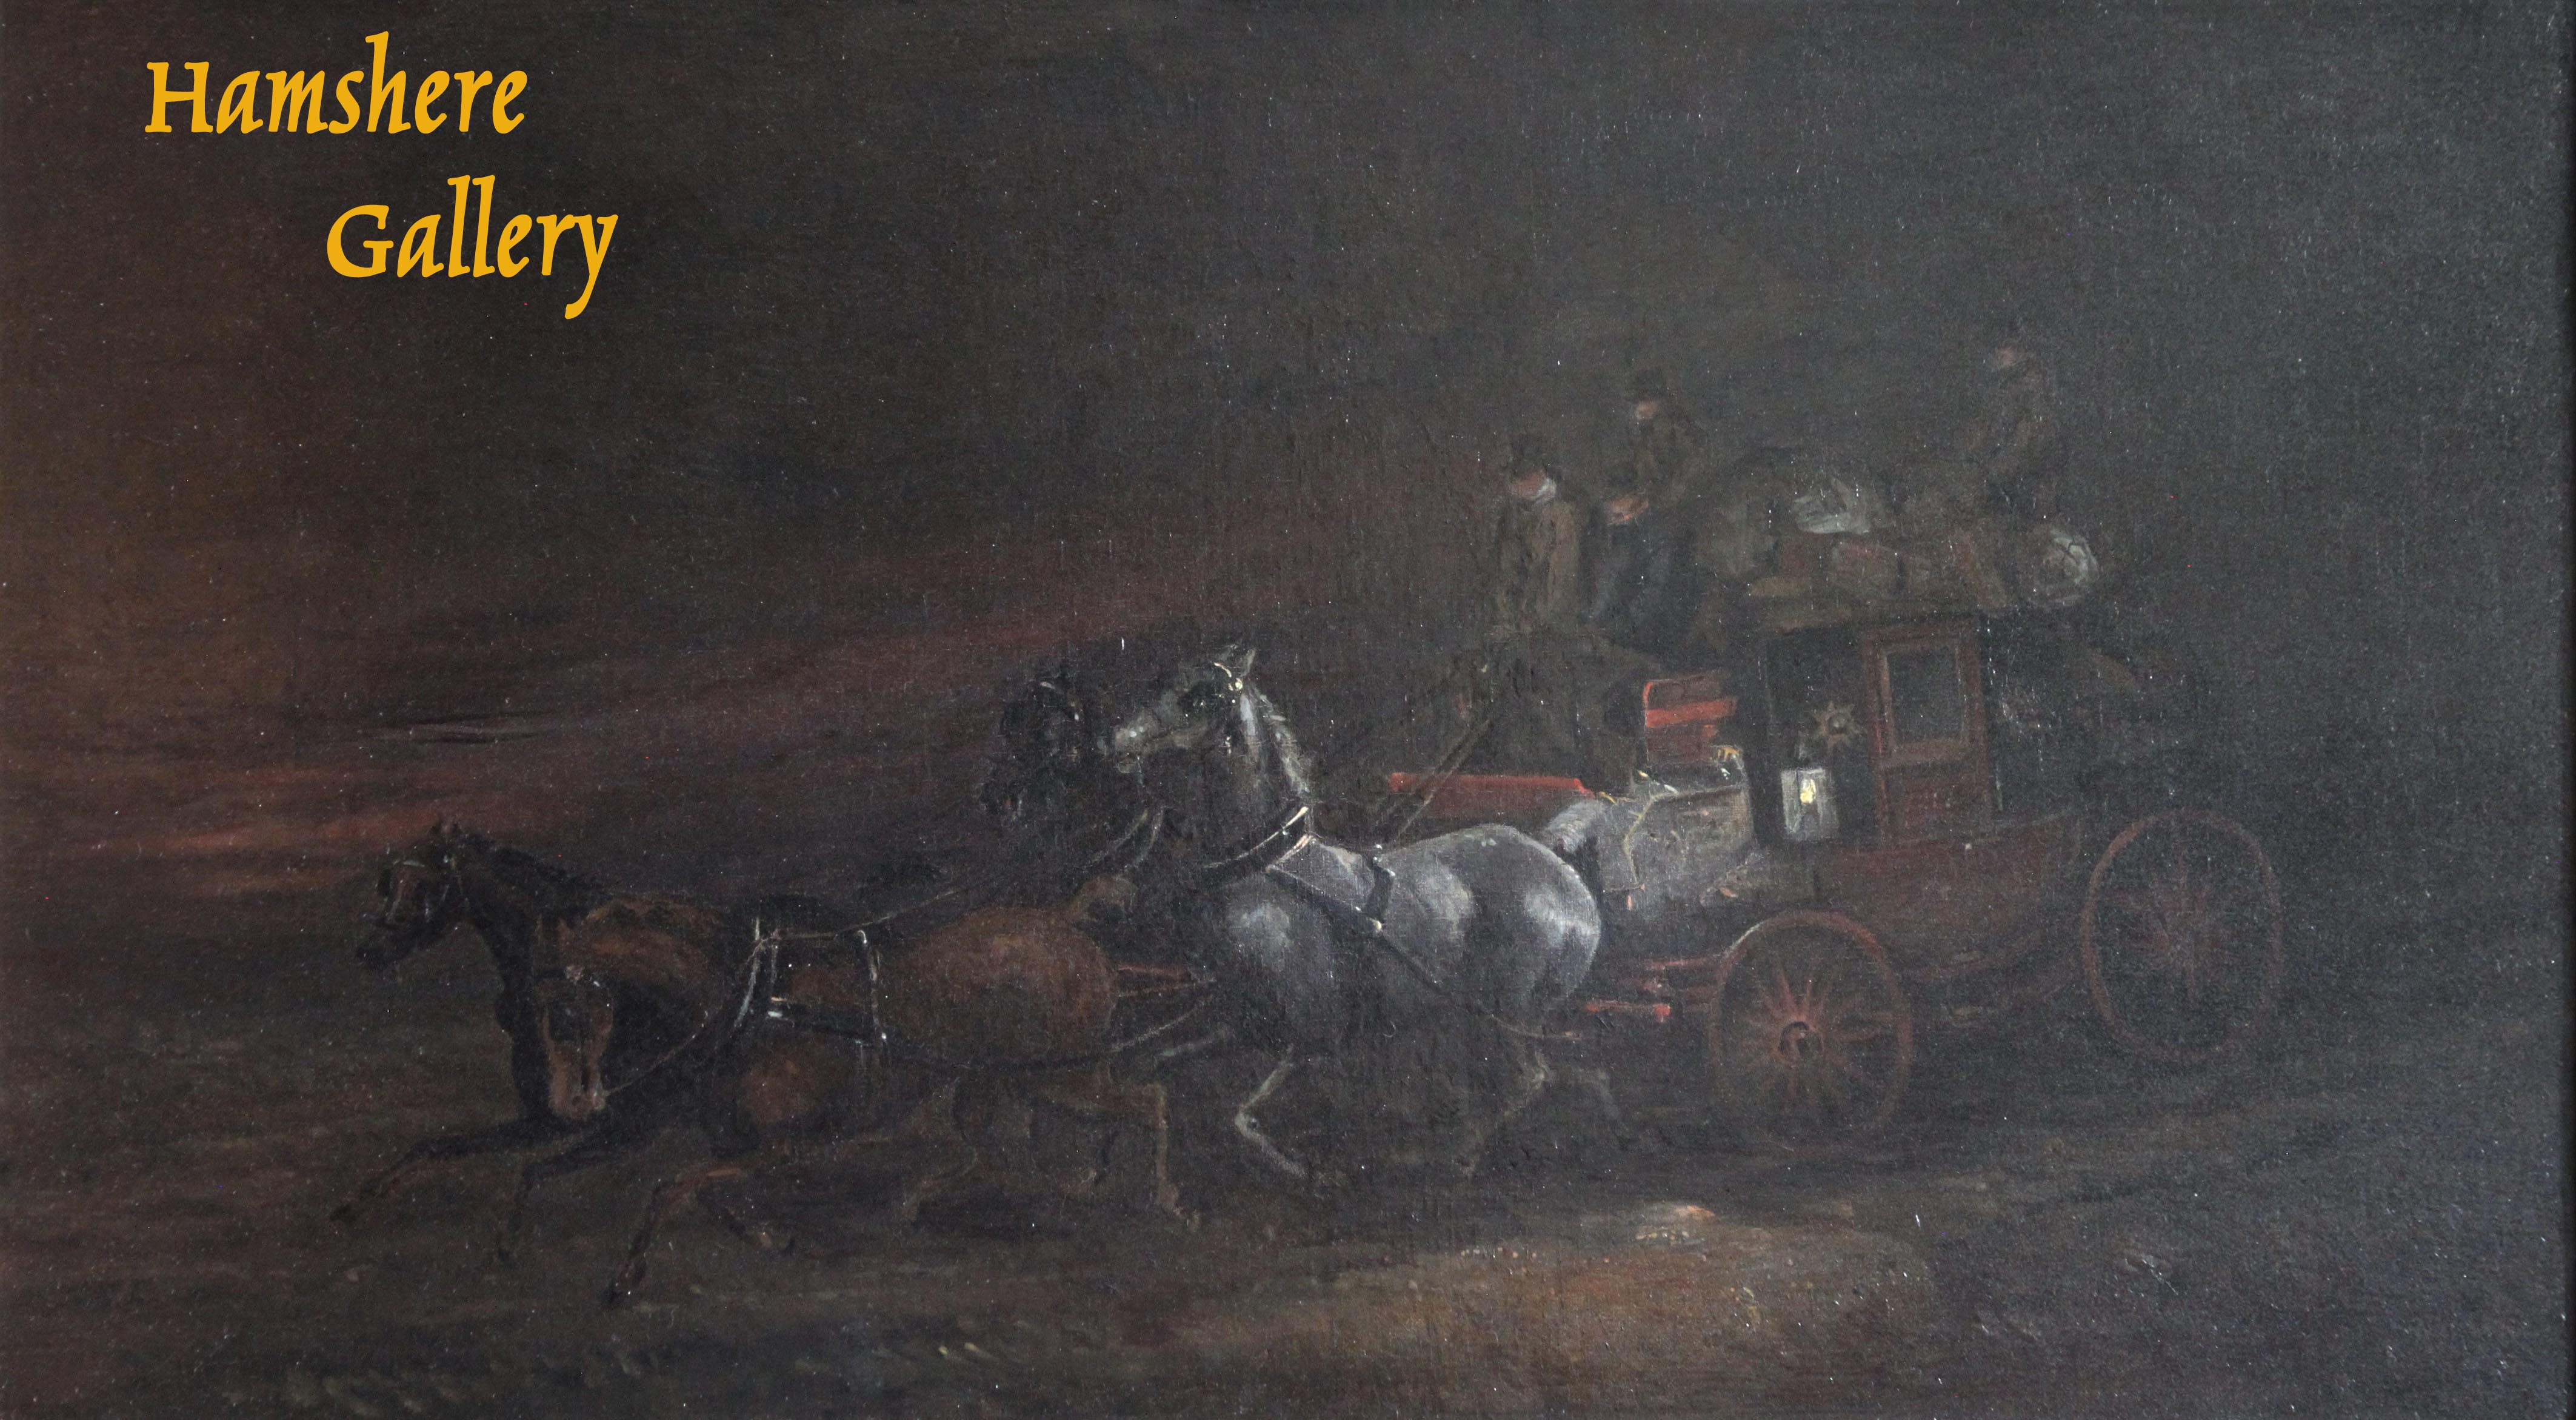 Click to see full size: Mid 19th century night scene of a Royal Mail carriage / coaching / four-in- hand oil by Charles Cooper Henderson (English, 1803-1877)- Mid 19th century night scene of a Royal Mail carriage / coaching / four-in- hand oil by Charles Cooper Henderson (English, 1803-1877)